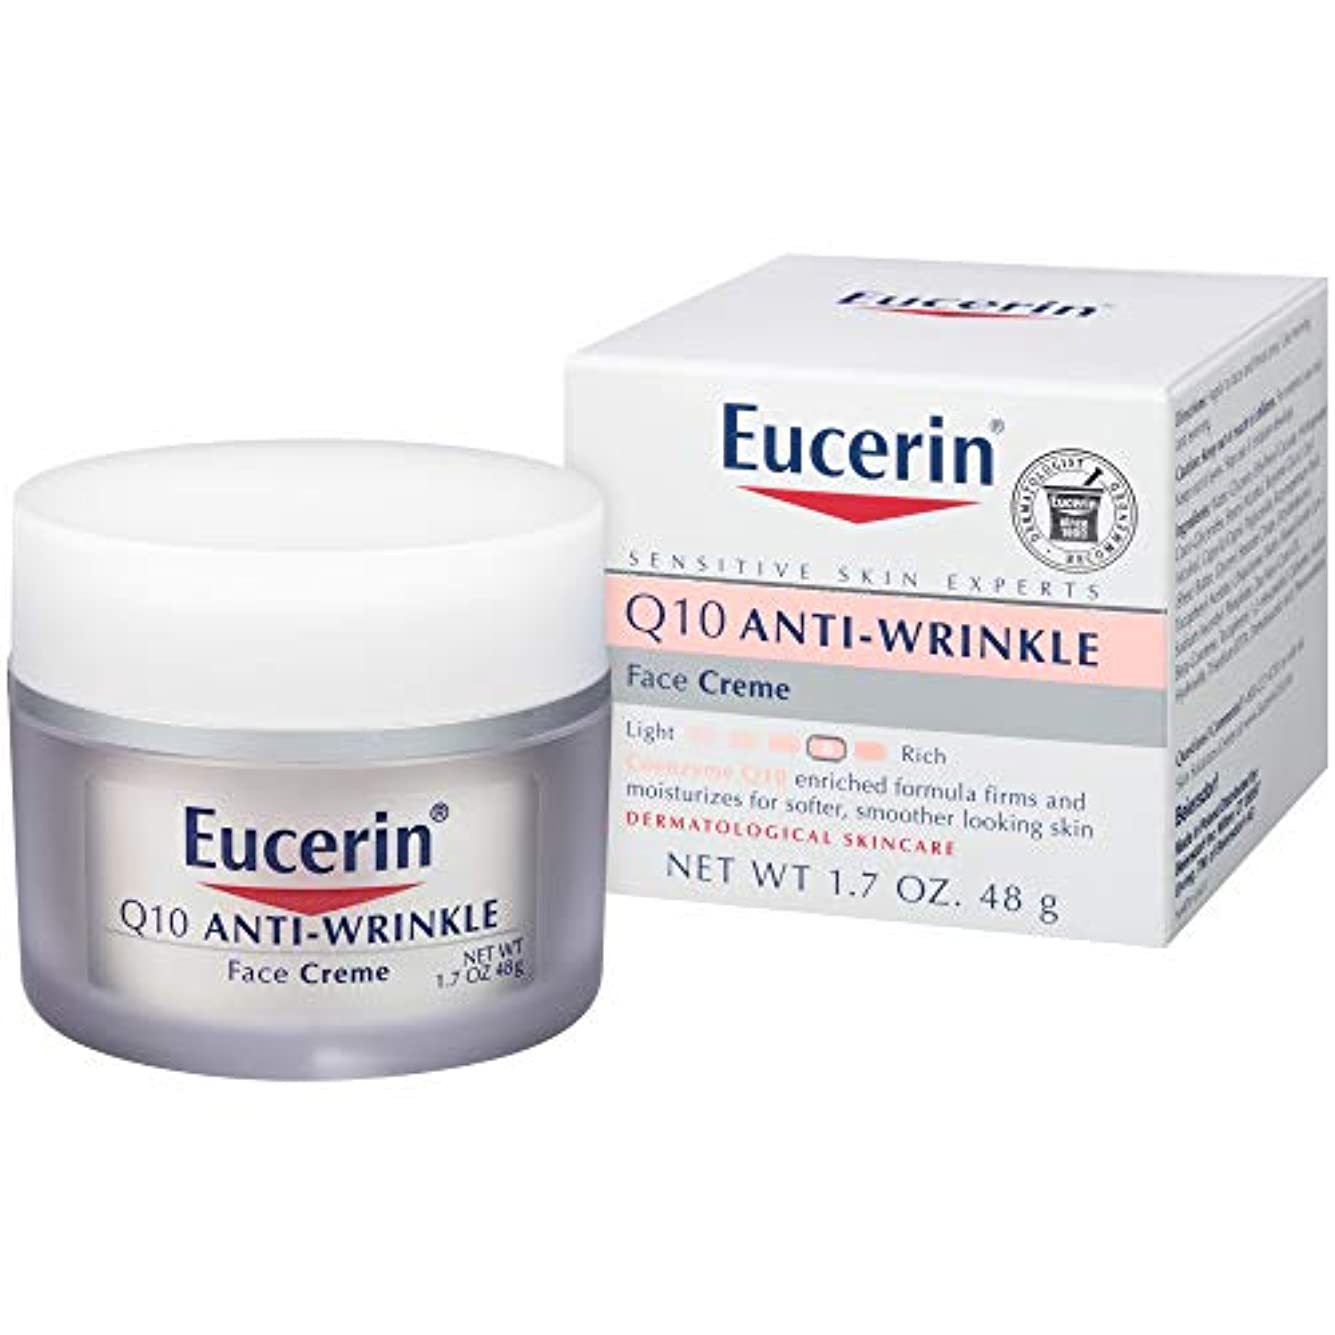 図エンドウ受信Eucerin Sensitive Facial Skin Q10 Anti-Wrinkle Sensitive Skin Creme 48g (並行輸入品)